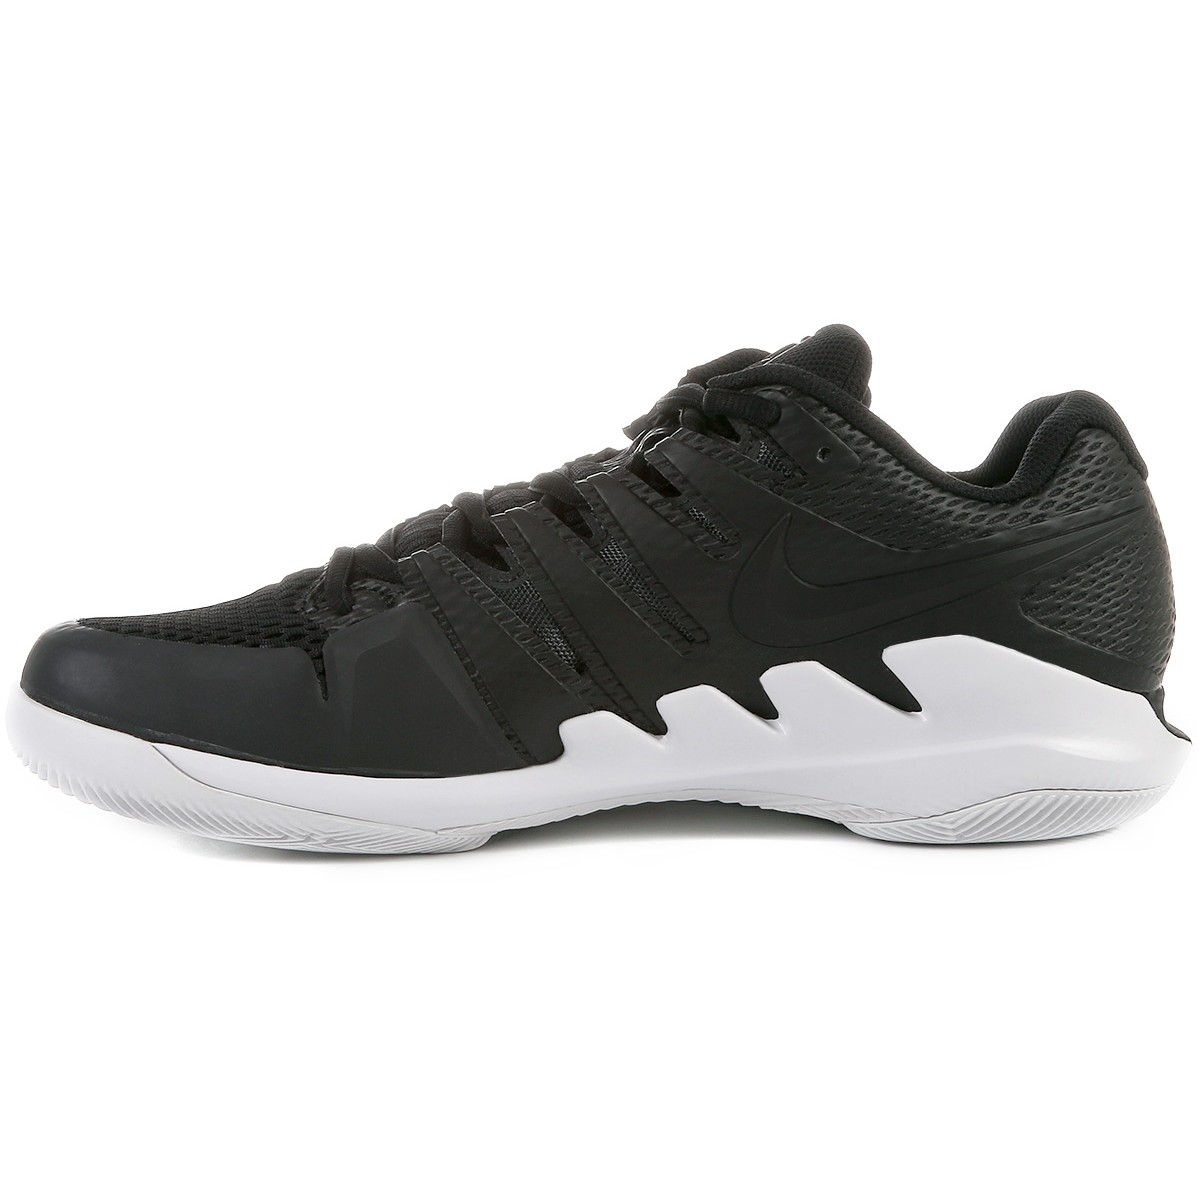 CHAUSSURES NIKE AIR ZOOM VAPOR 10 HC NIKE Homme